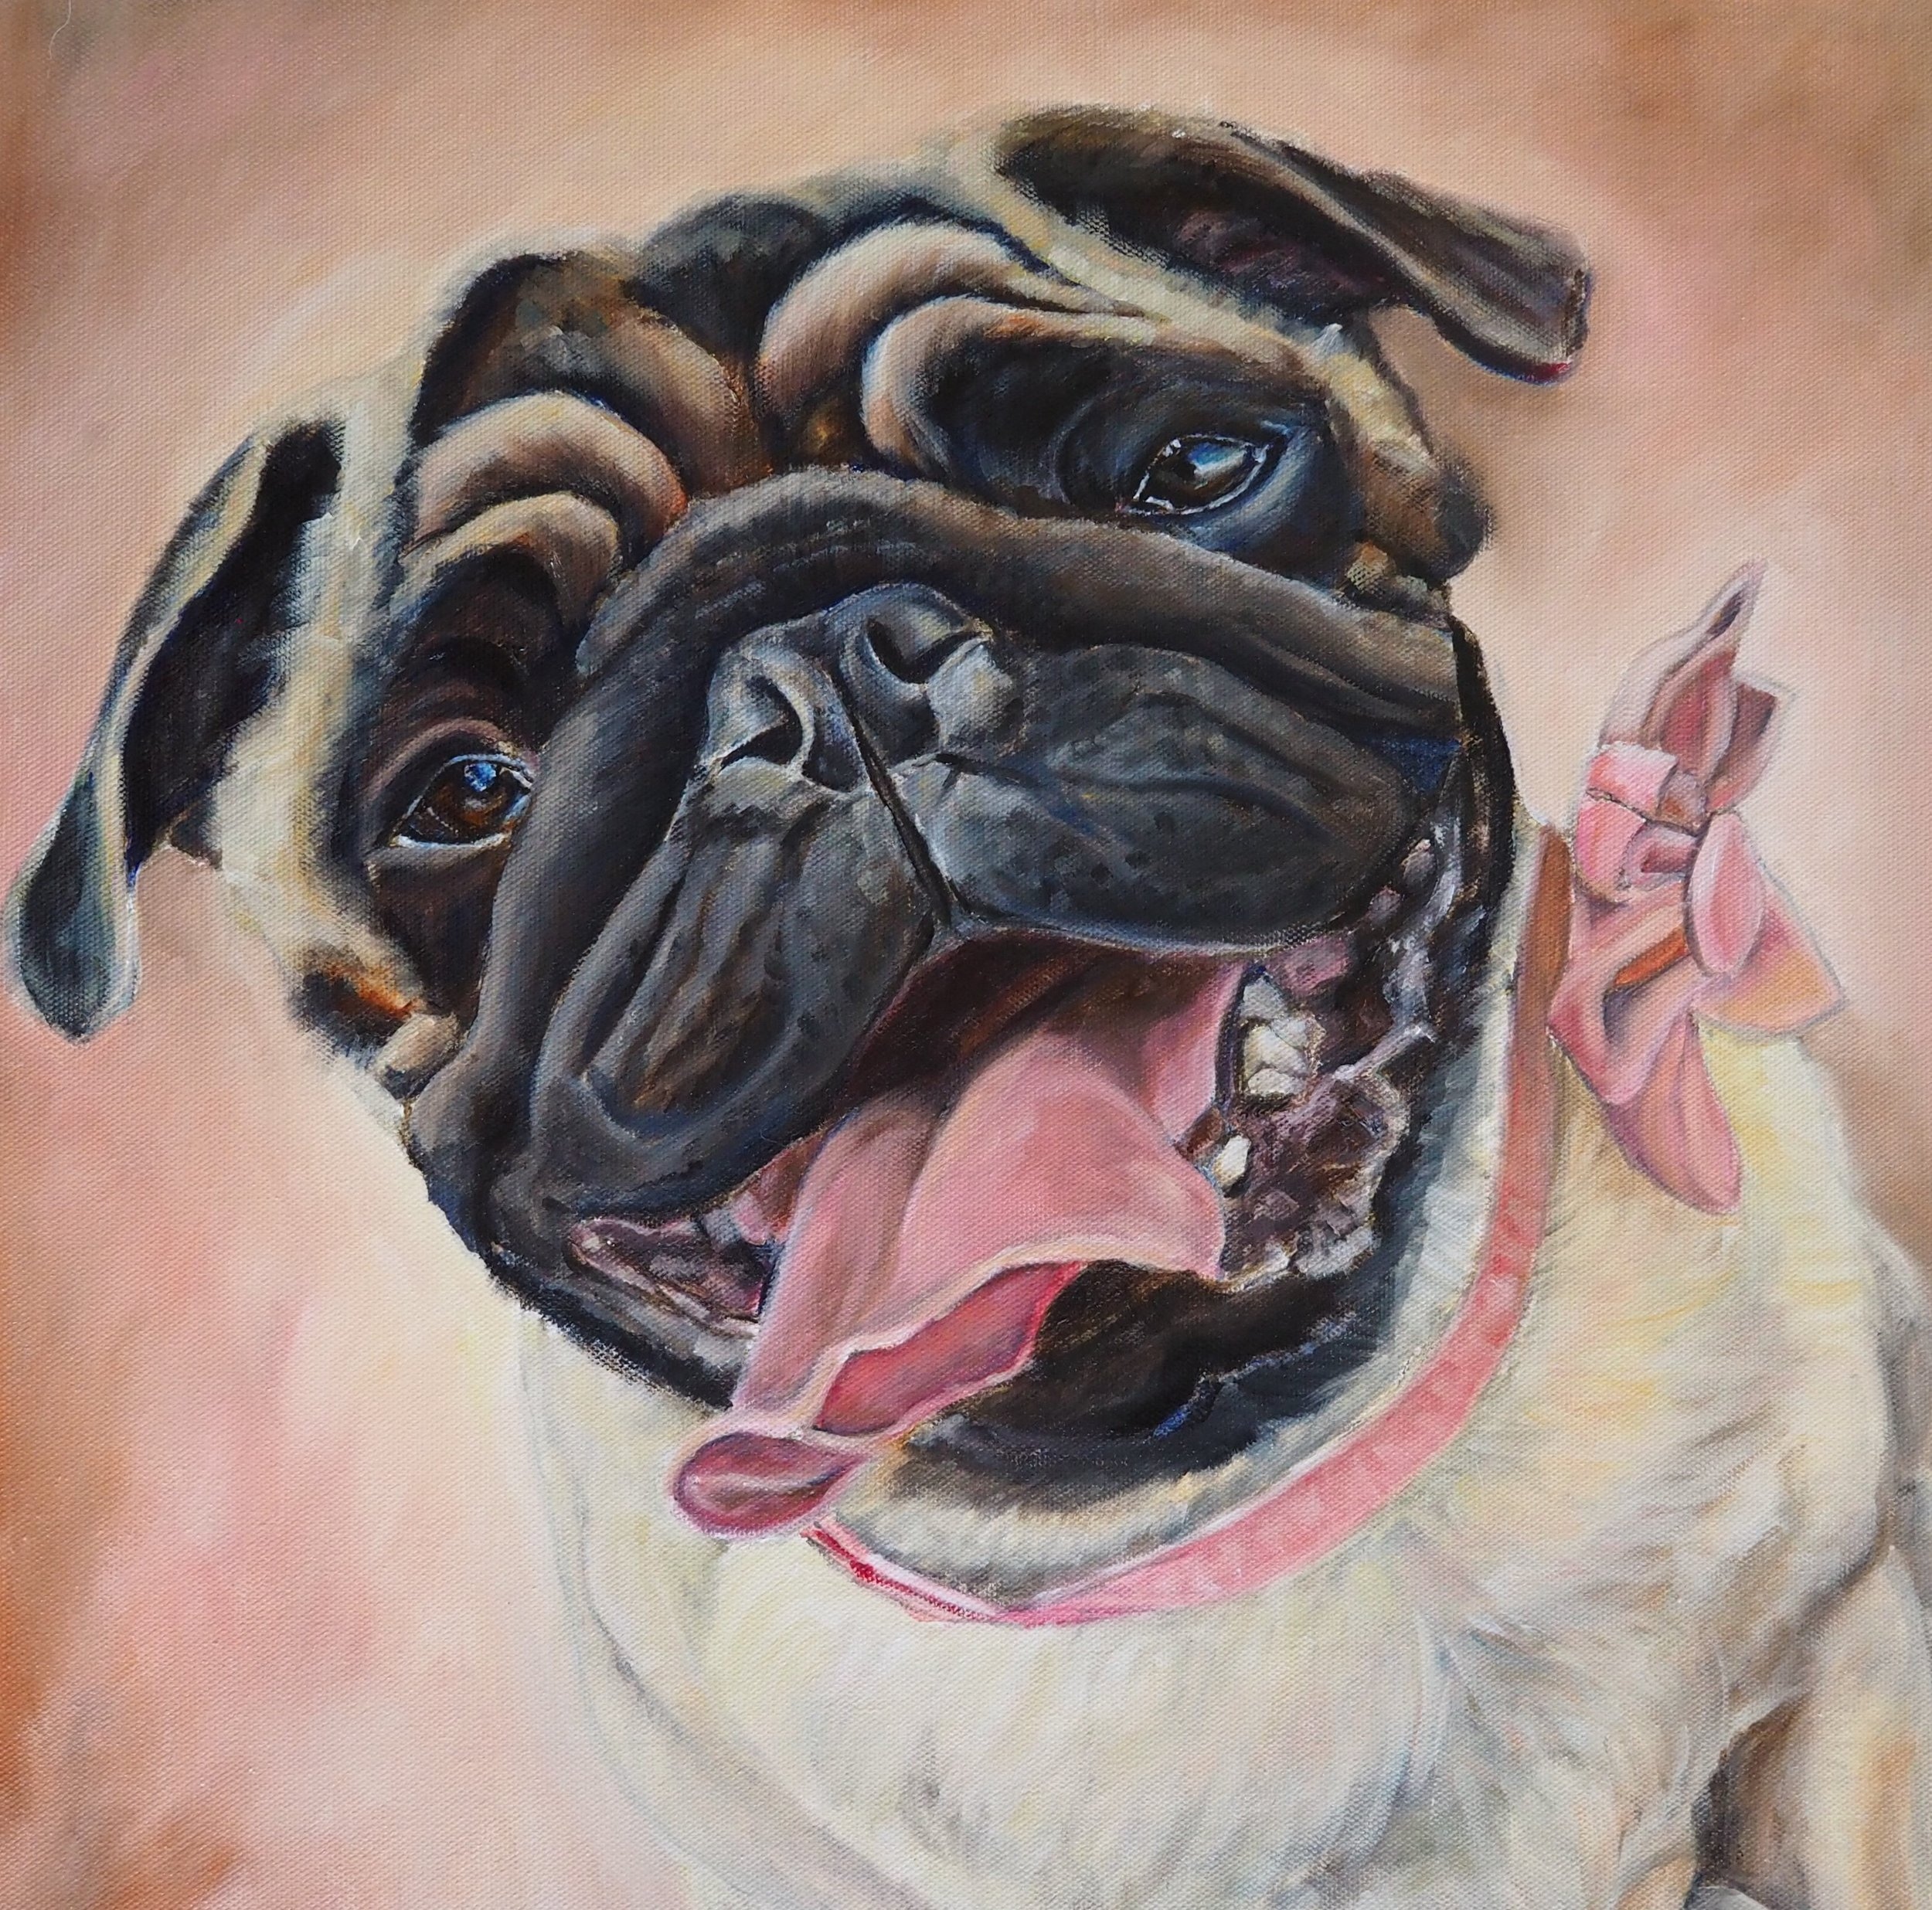 PUG DOG CUSTOM PAINTING IN OIL. COMMISSION PET PAINTING BY OPAL PASTRO ART